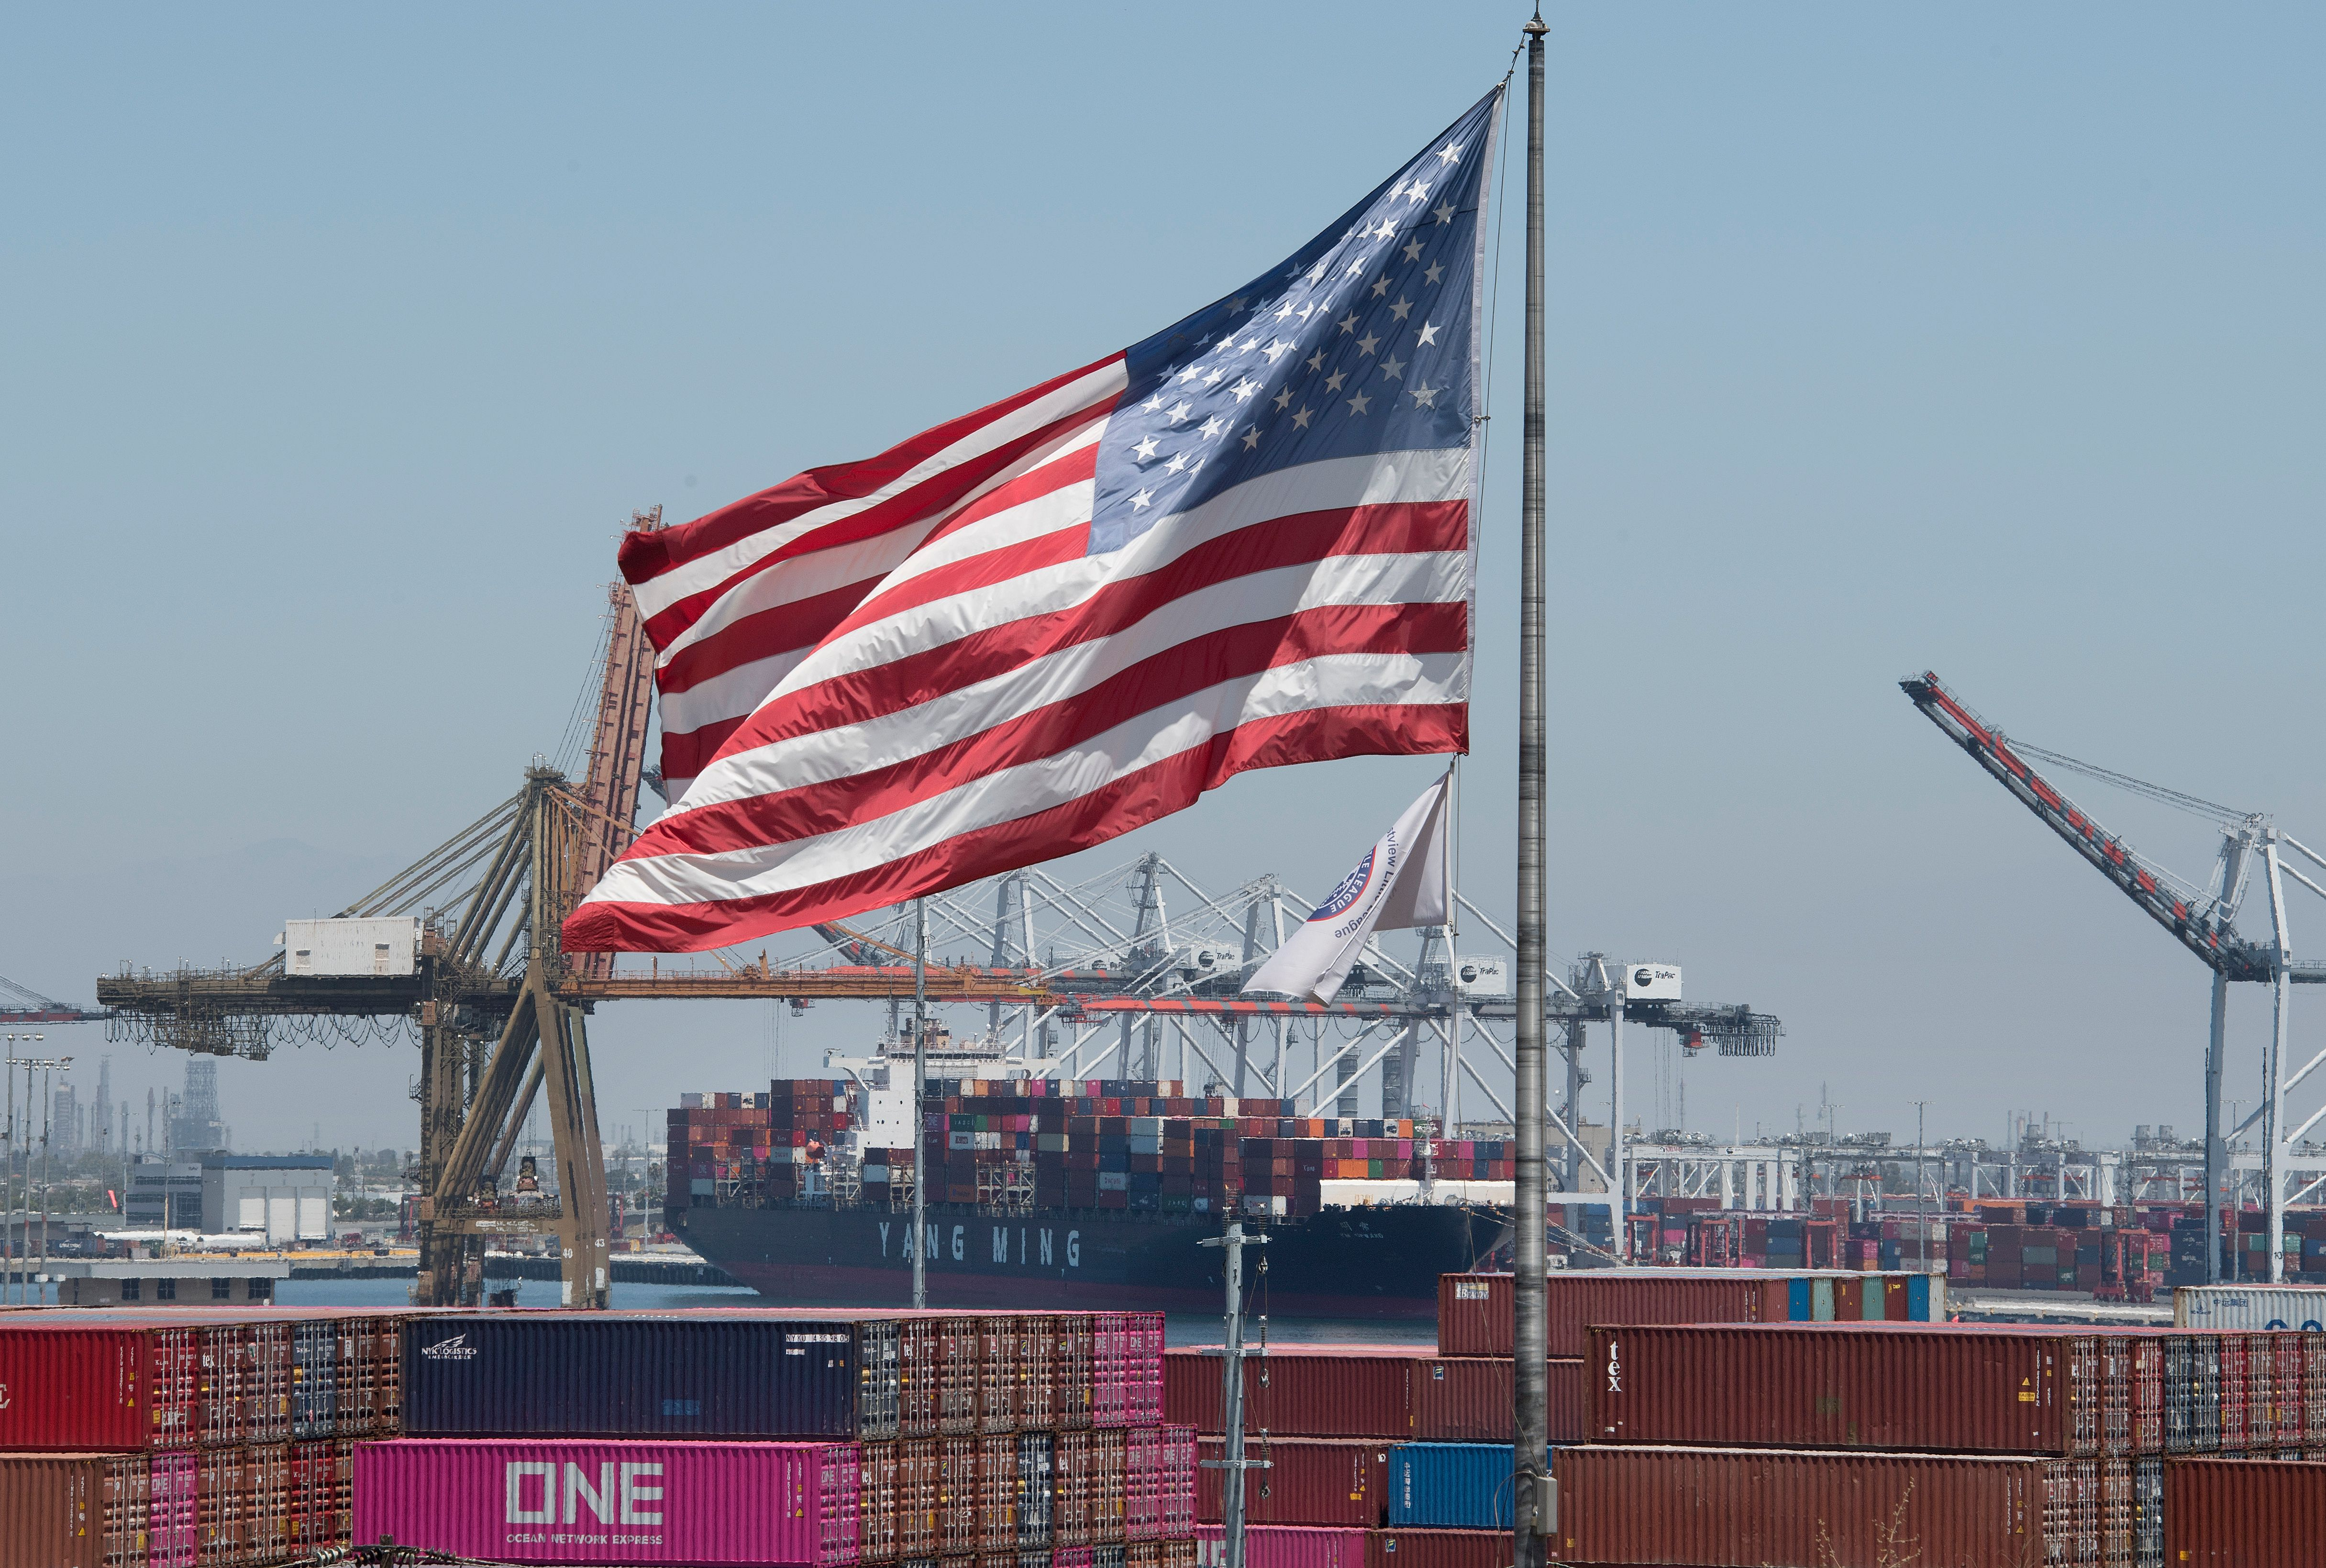 The US flag flies over a container ship unloading it's cargo from Asia, at the Port of Long Beach, California on August 1, 2019.